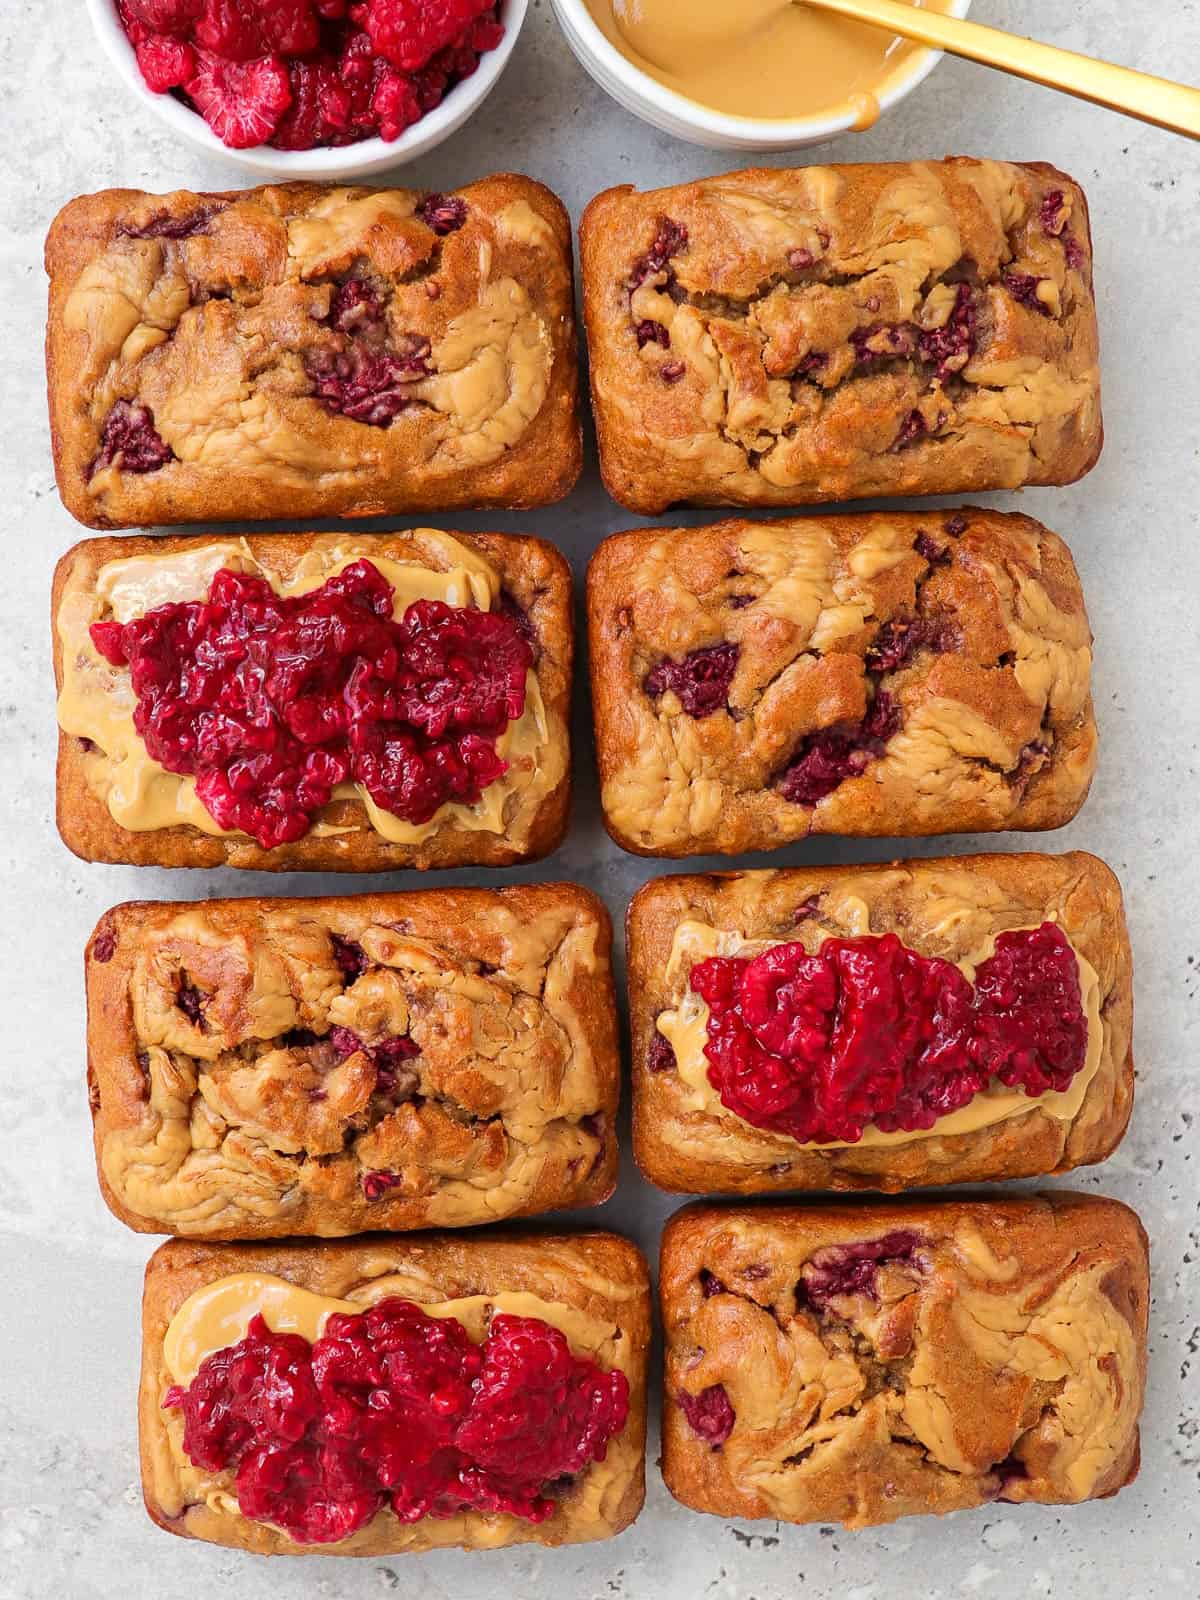 Some breads topped with extra peanut butter and mashed raspberries.